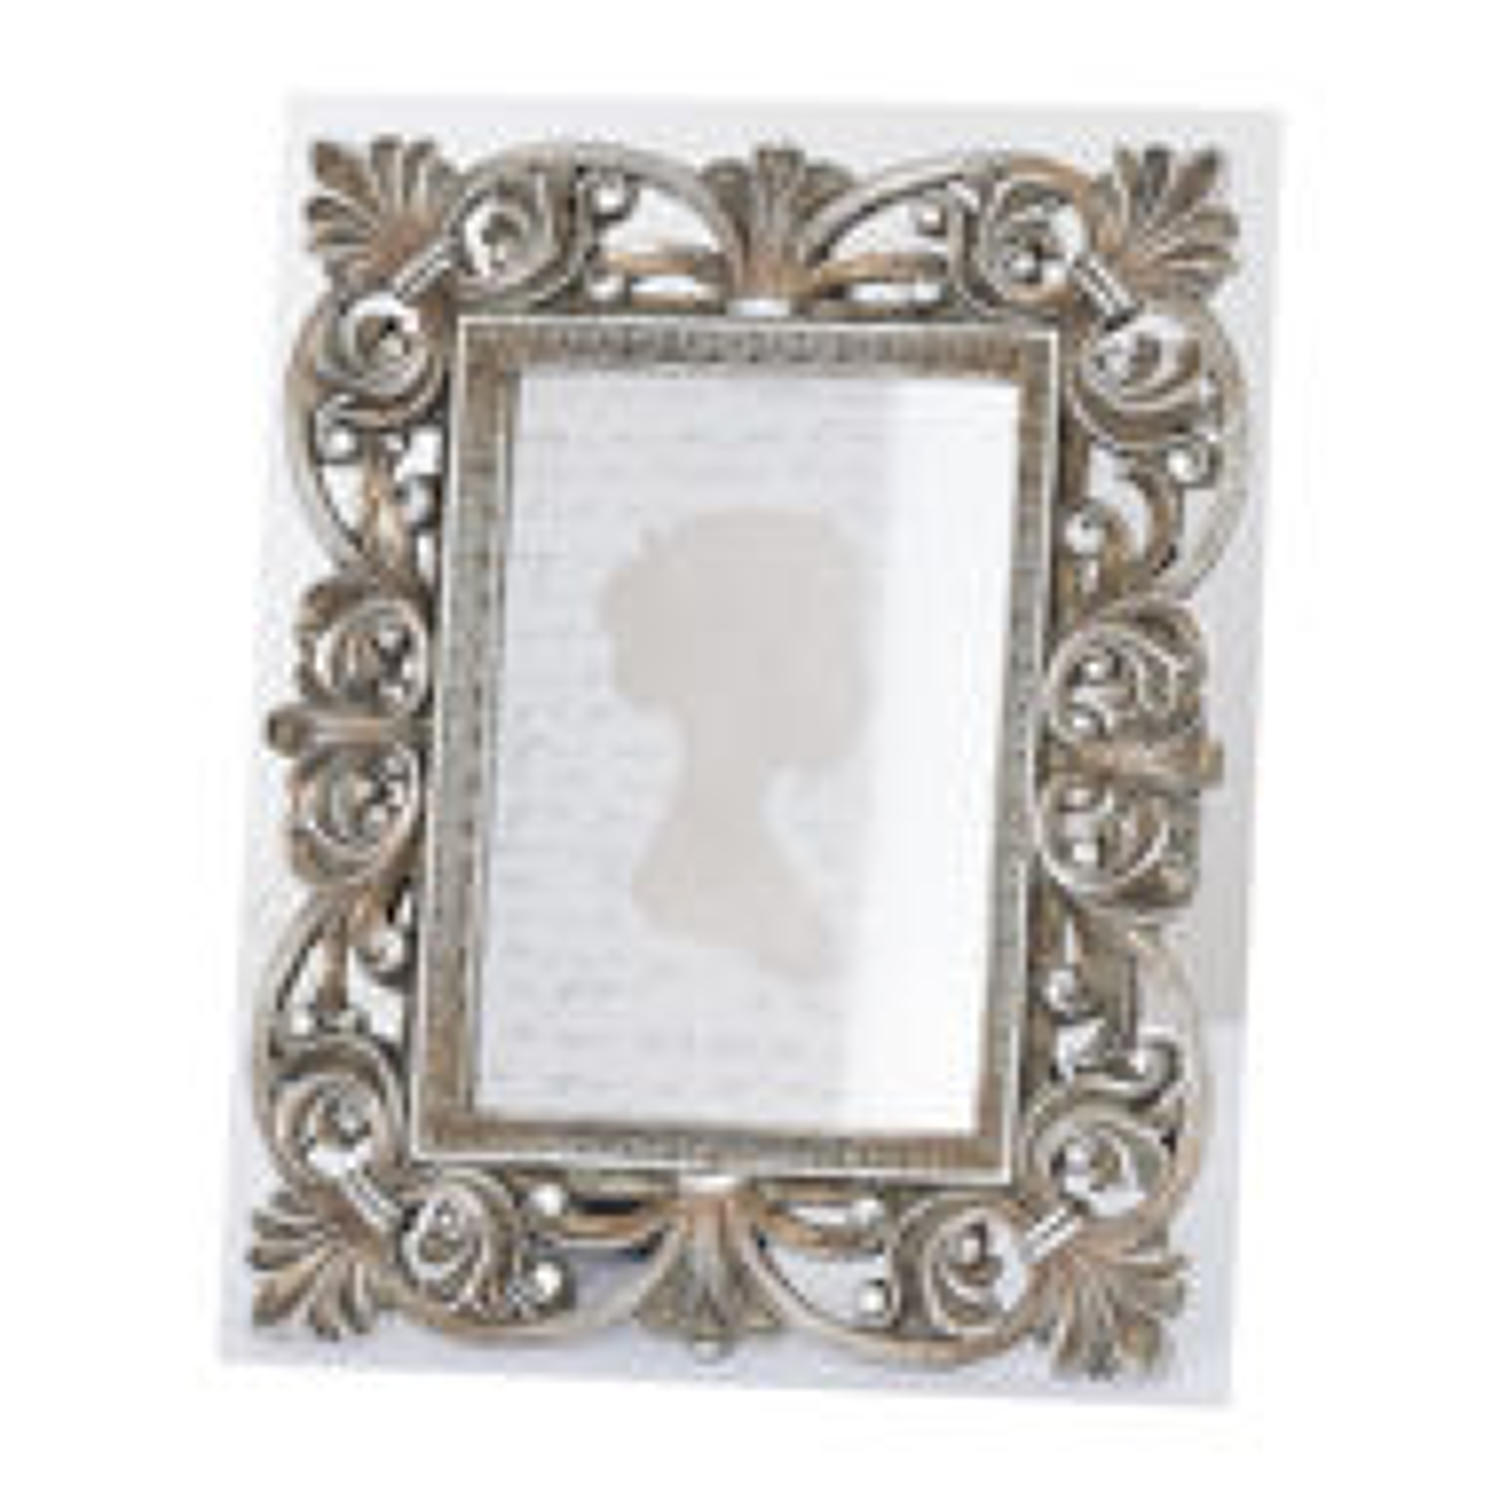 Antiqued silver fleur de lis decorative frame - 5 x7 Large